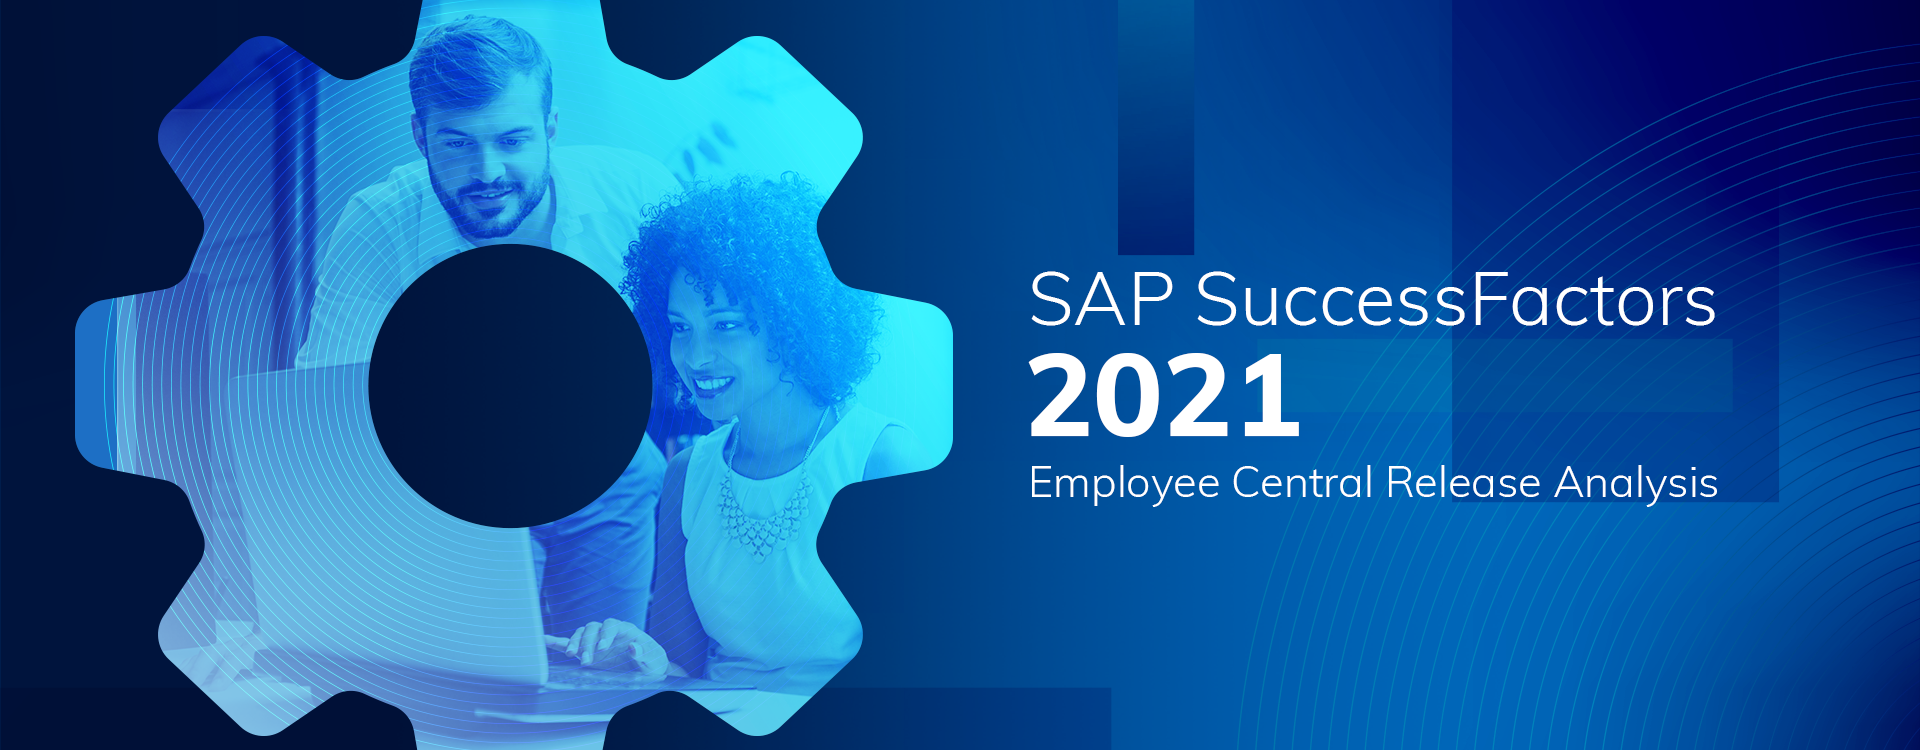 SAP SuccessFactors H1 2021 Employee Central Release Analysis featured image